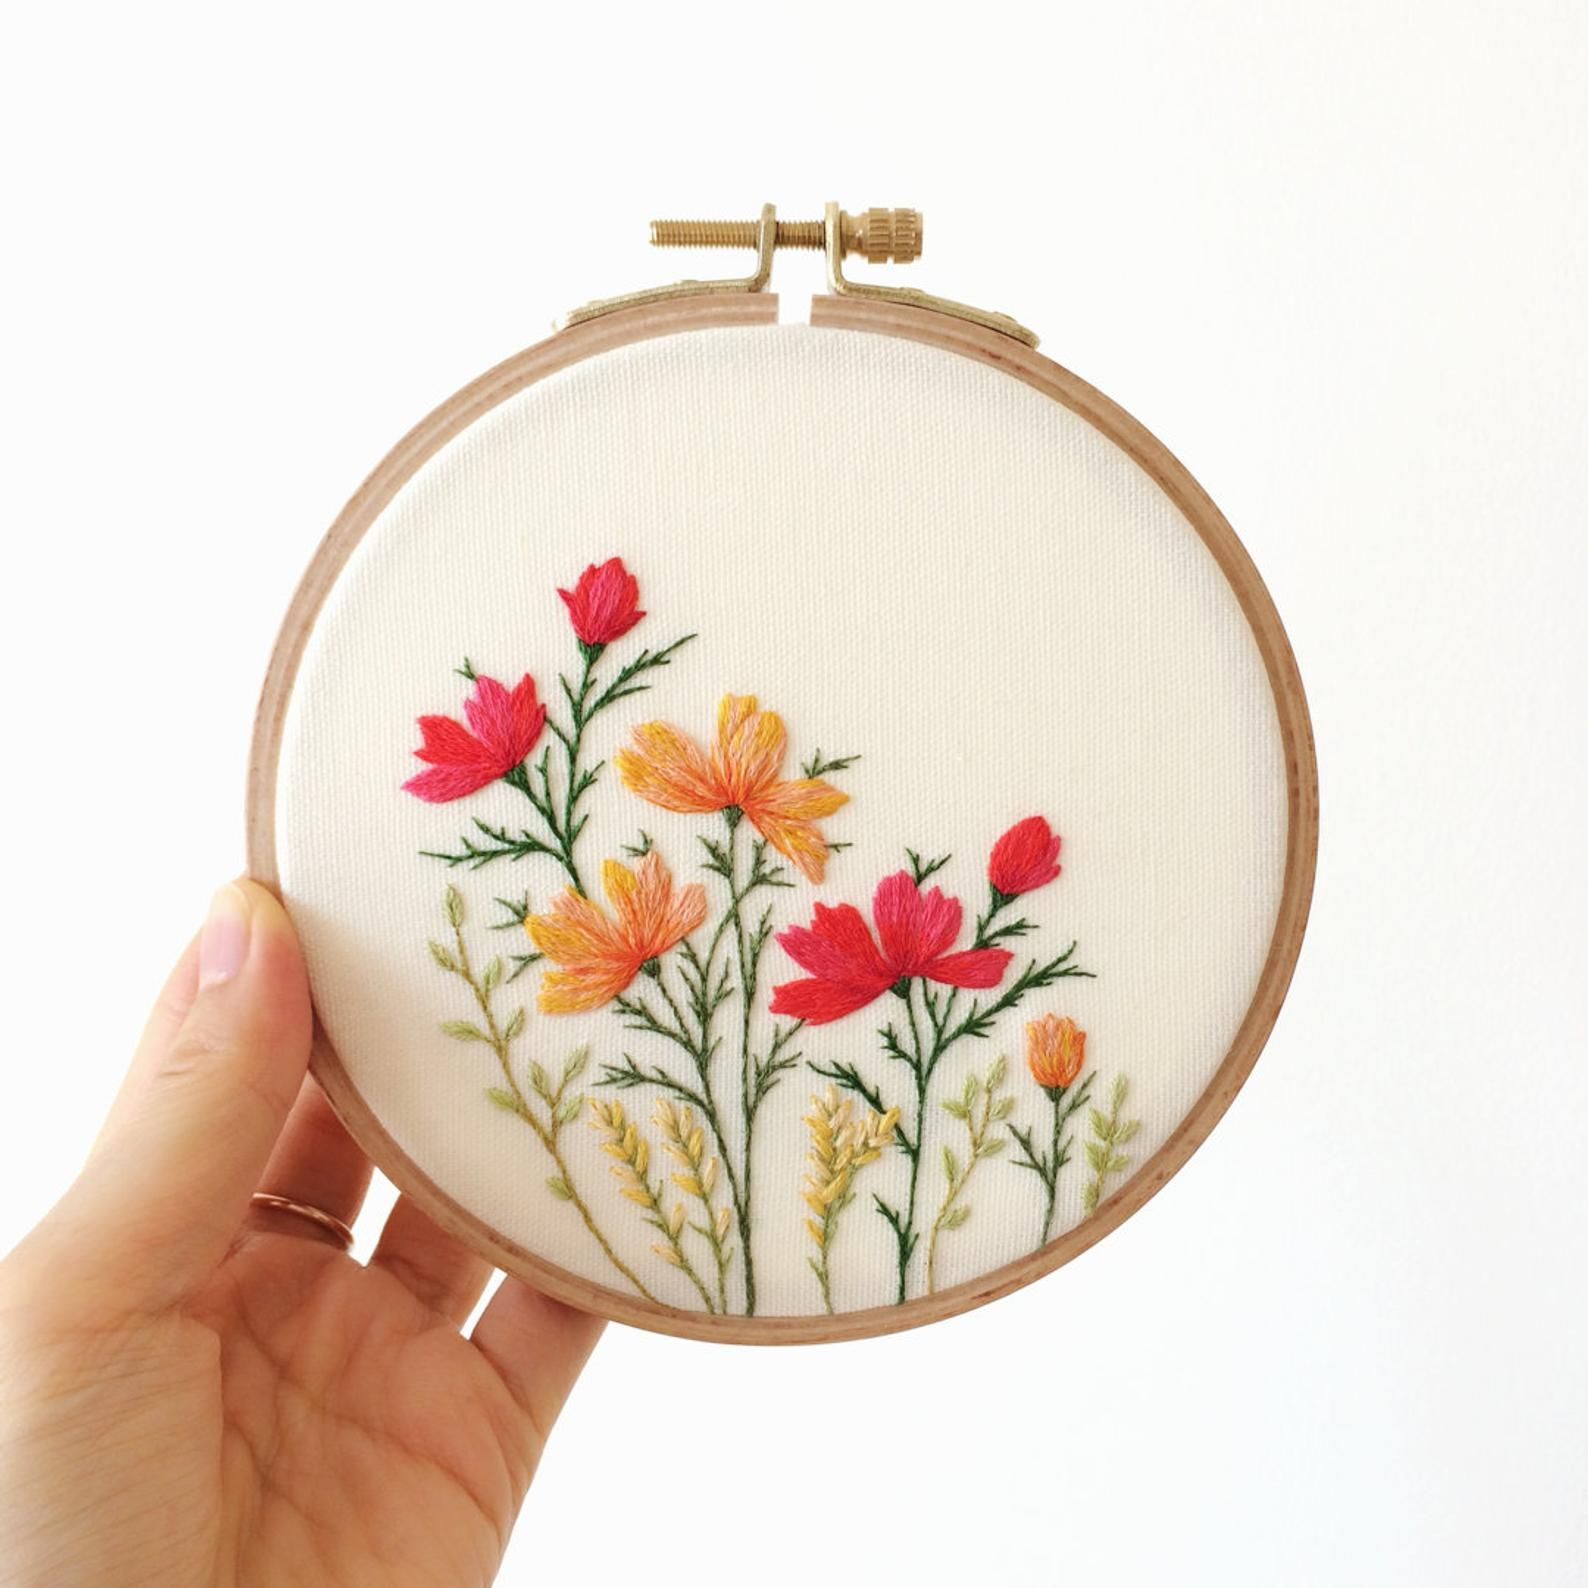 Flower Embroidery Hoop Art With Wild Blossom (View 5 of 20)